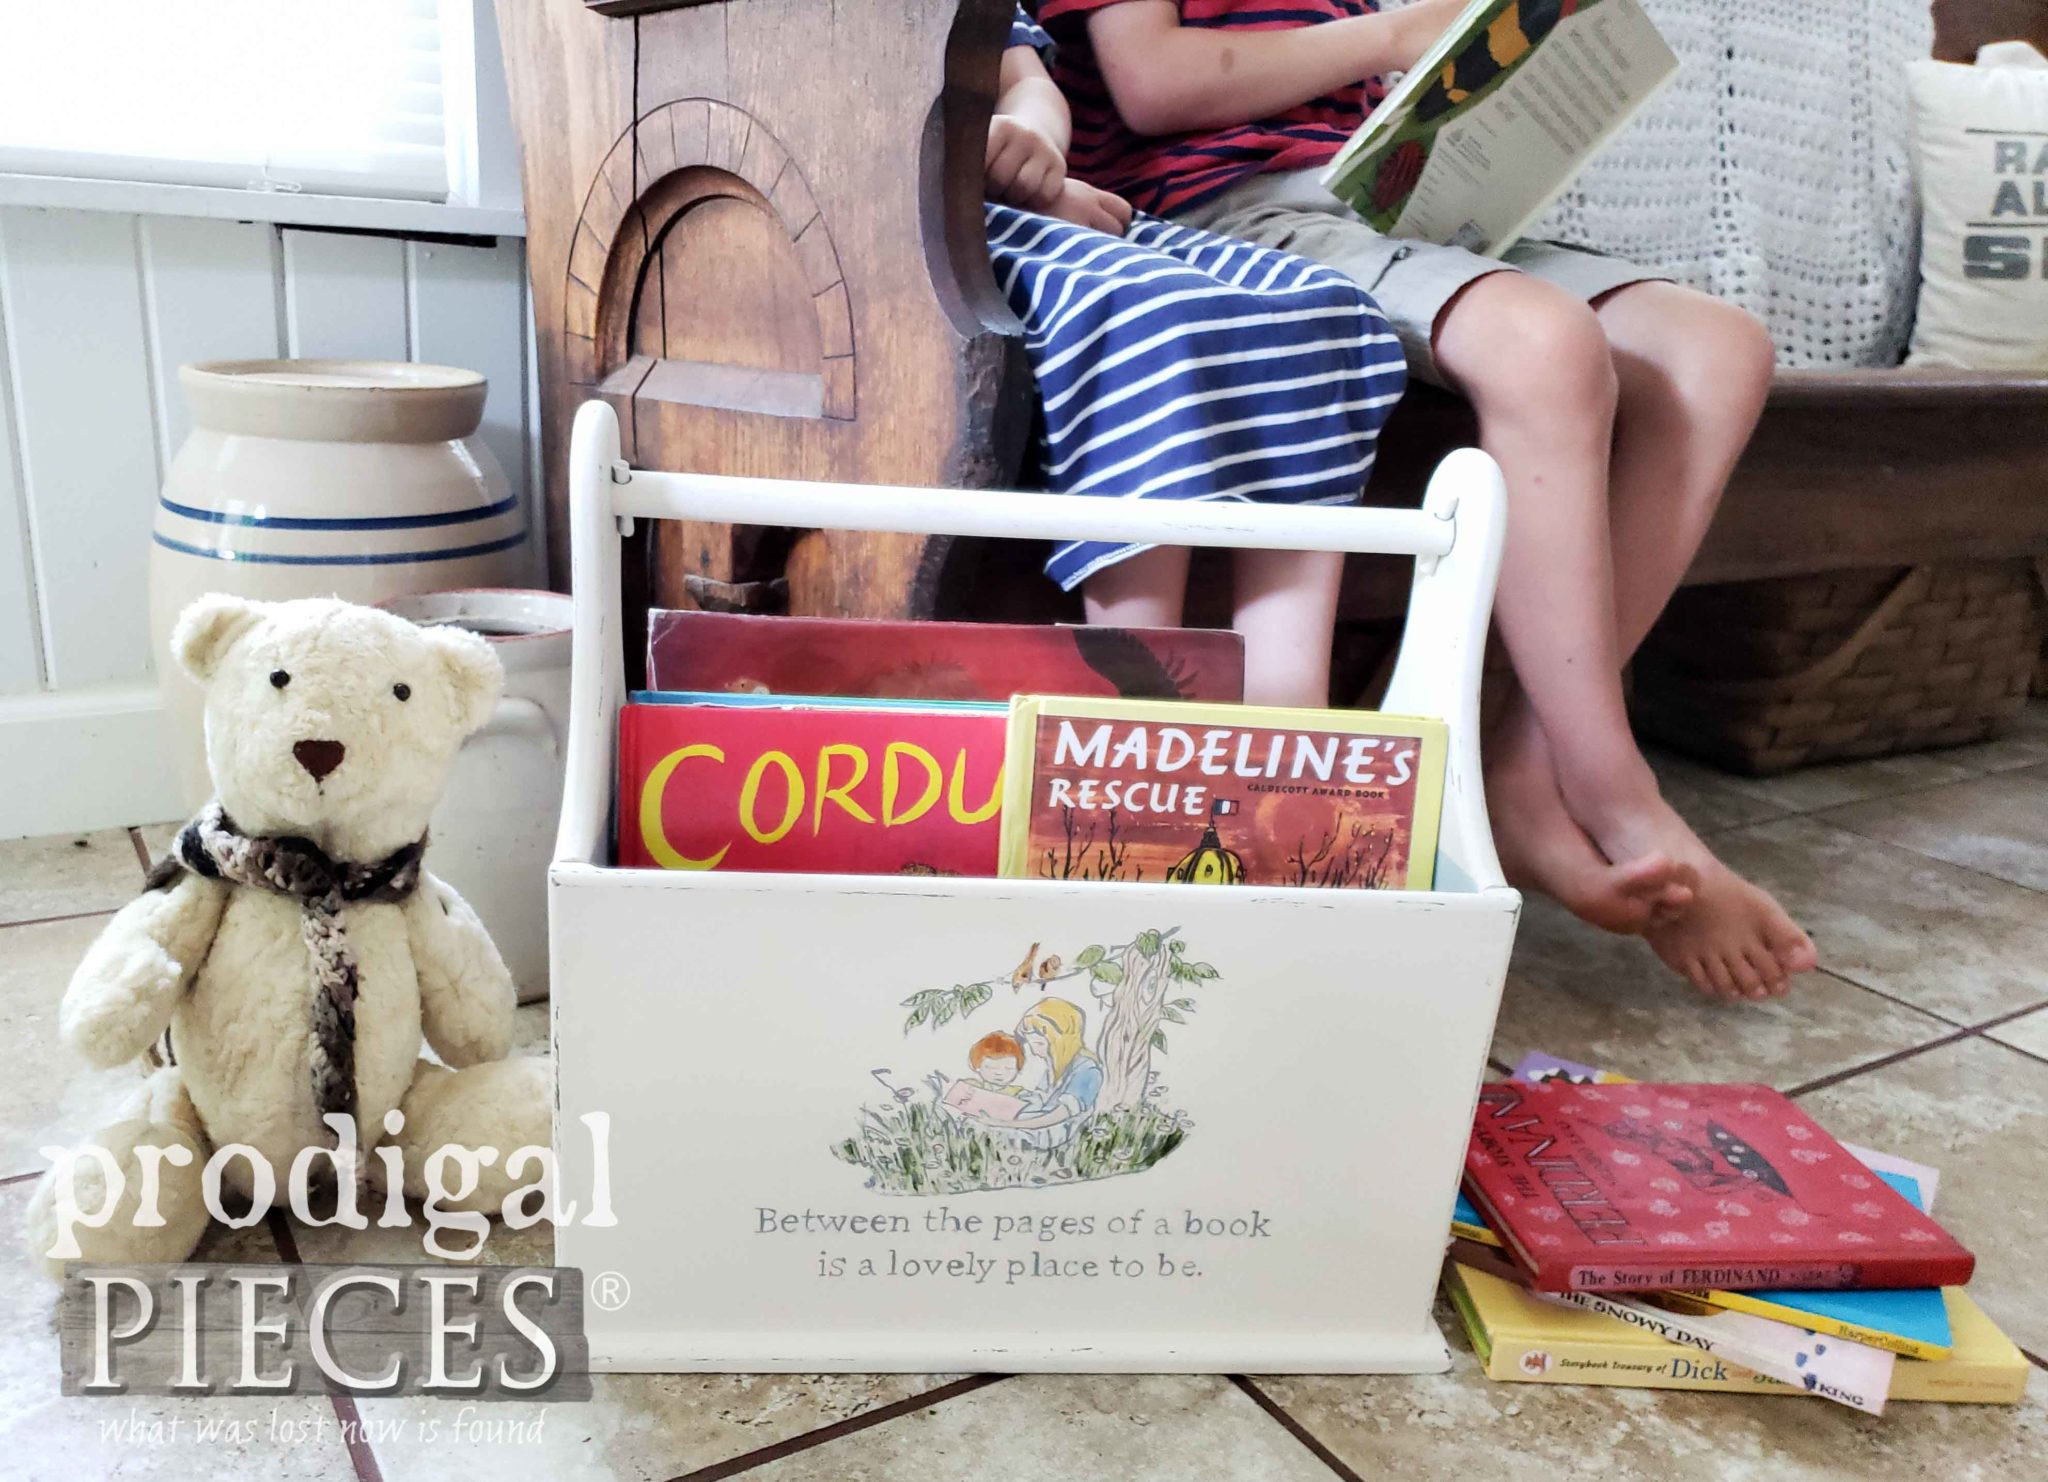 Upcycled Book Caddy made from a Vintage Magazine Rack by Prodigal Pieces | prodigalpieces.com